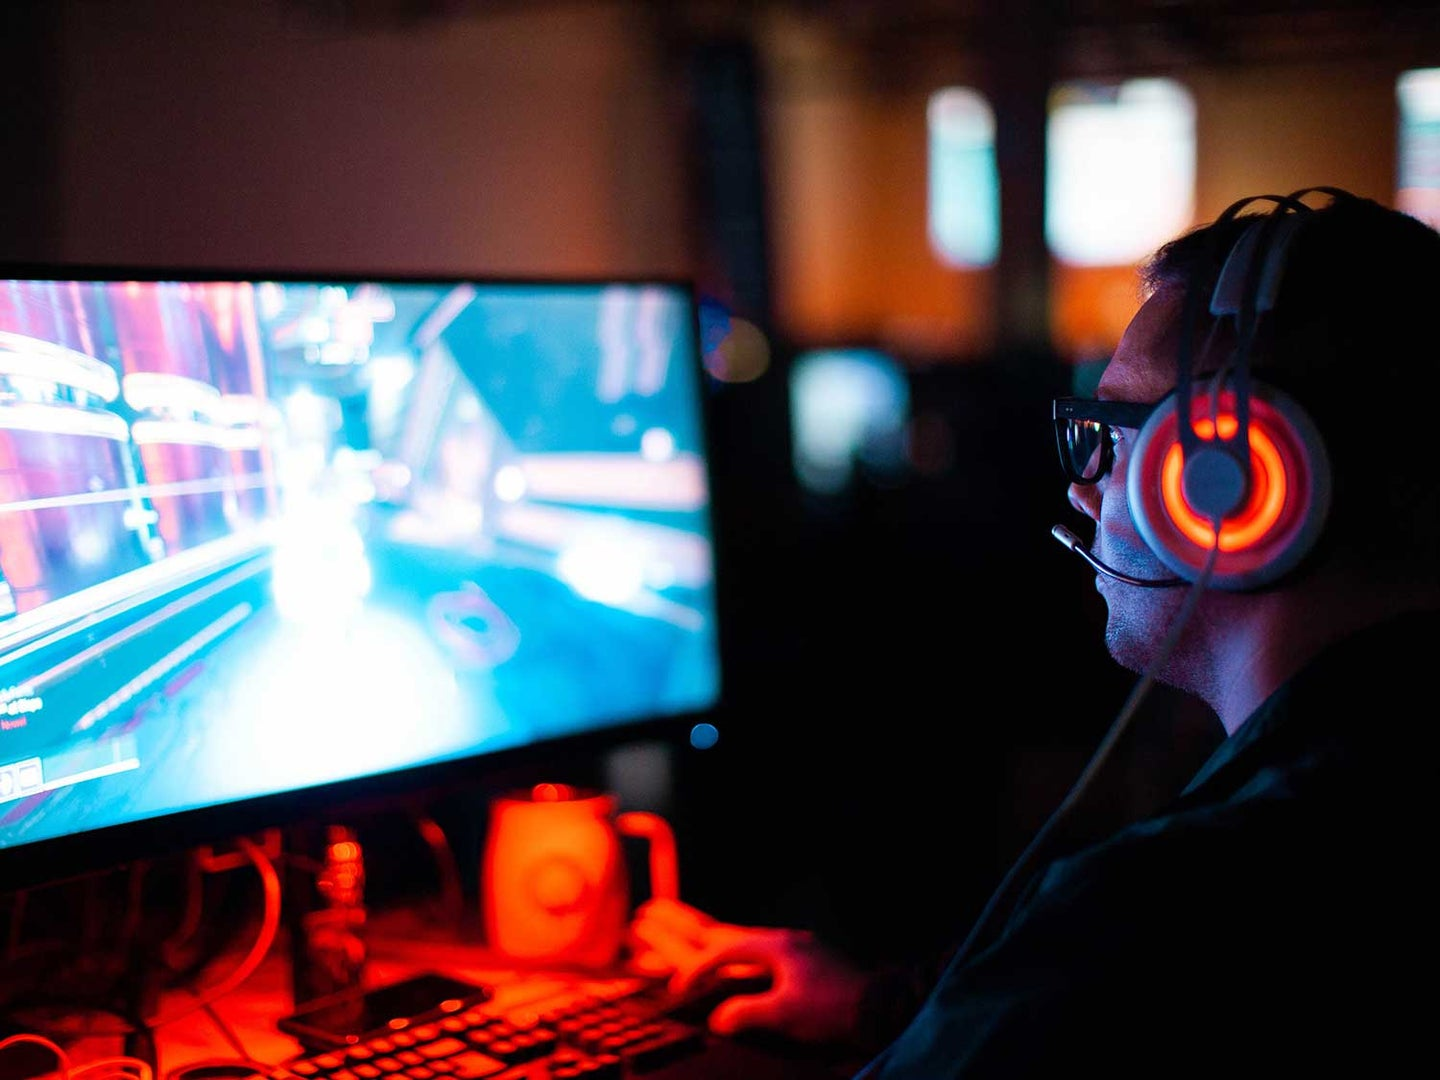 Man playing game on computer with surround sound gaming headset.